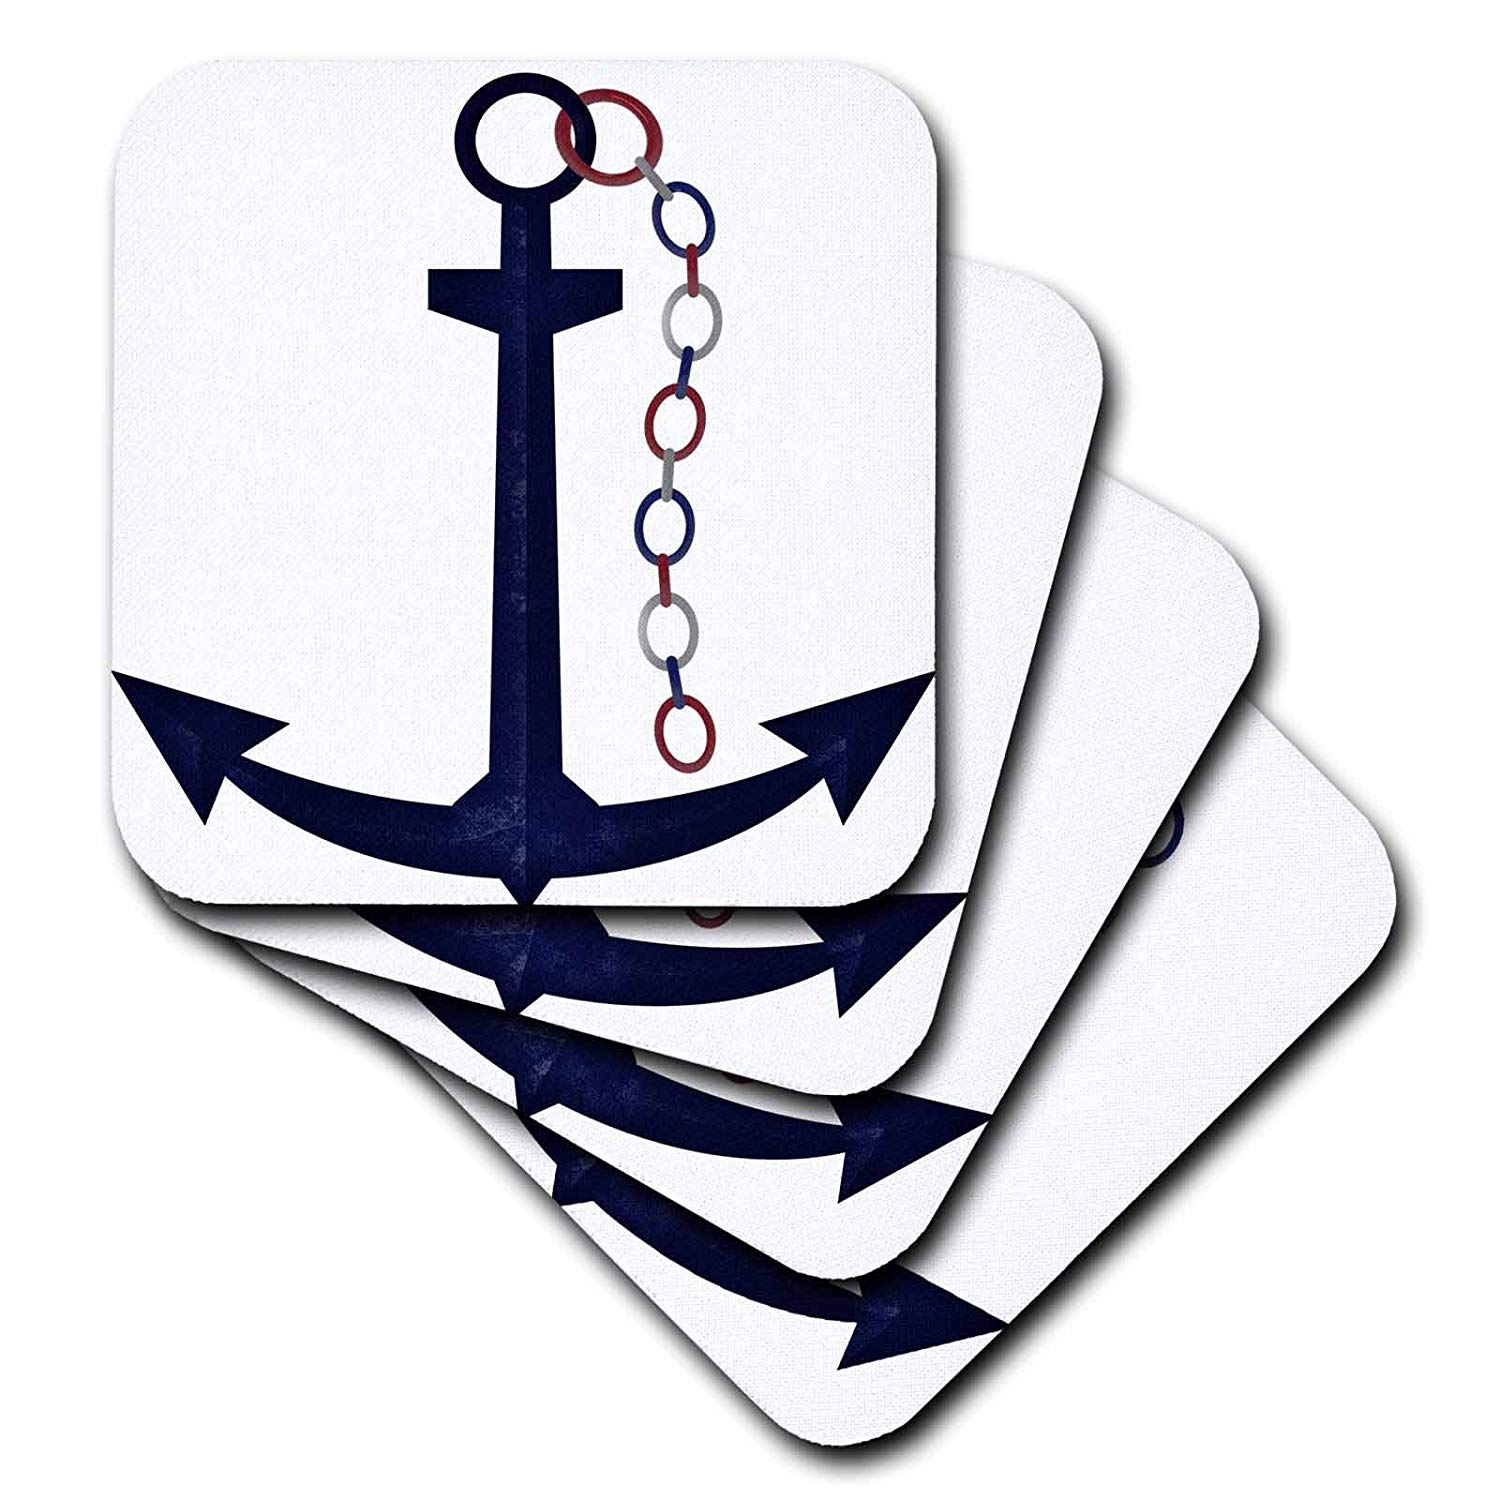 3dRose Cute Blue Sail Boat Anchor with Red, White, Blue Chain - Soft Coasters, Set of 8 (CST_222621_2)